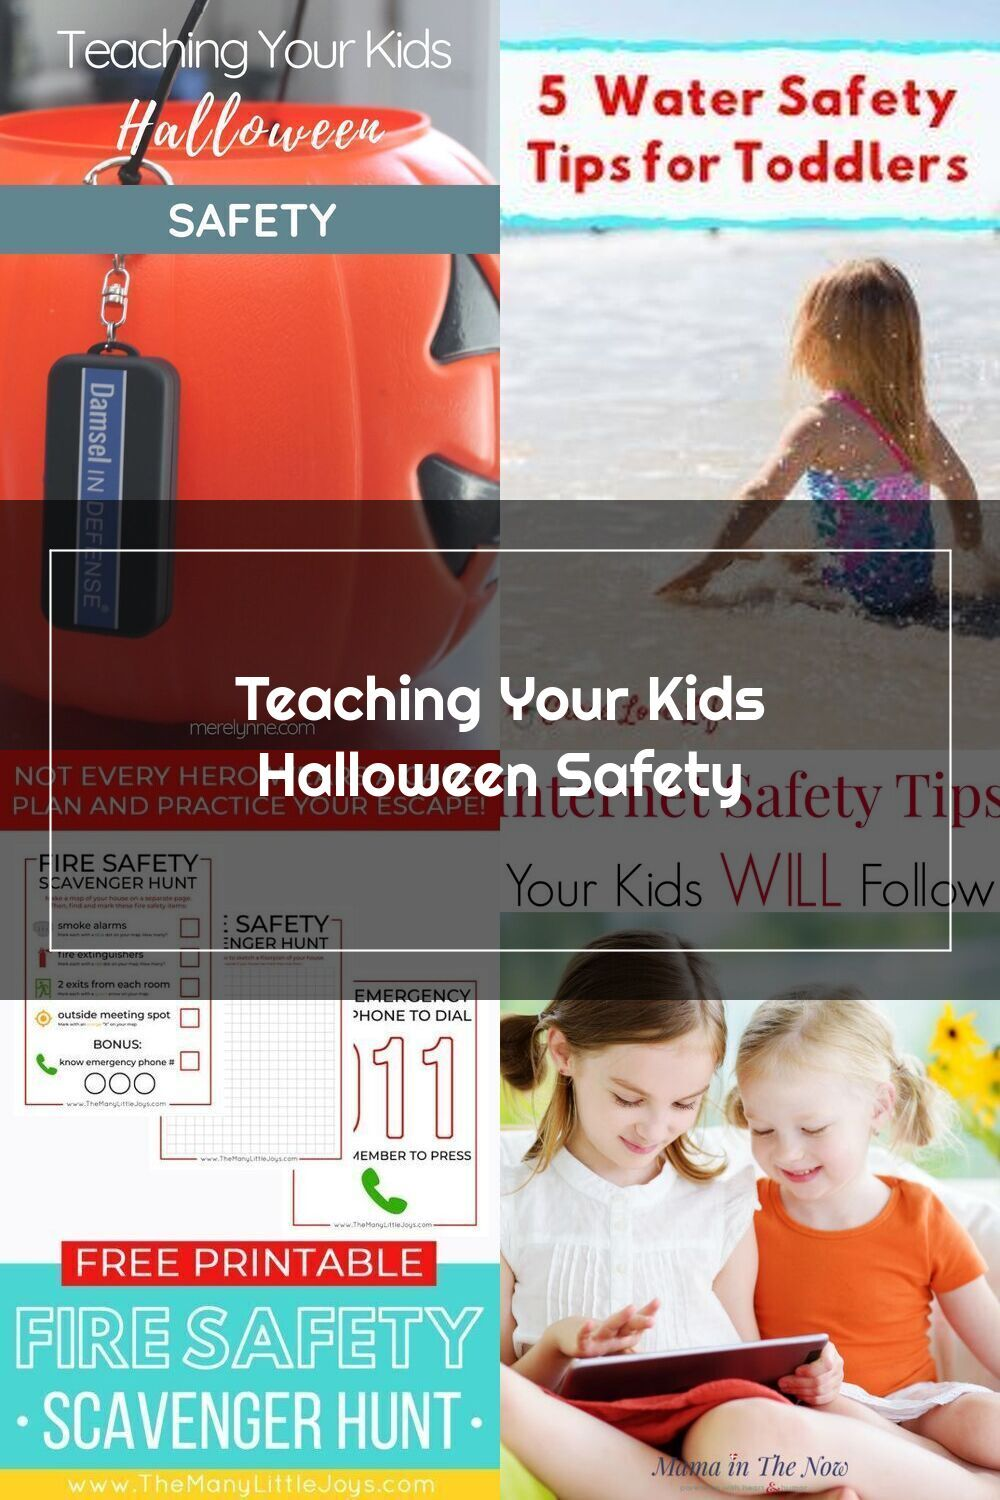 safety tips for Halloween trickortreating in 2020